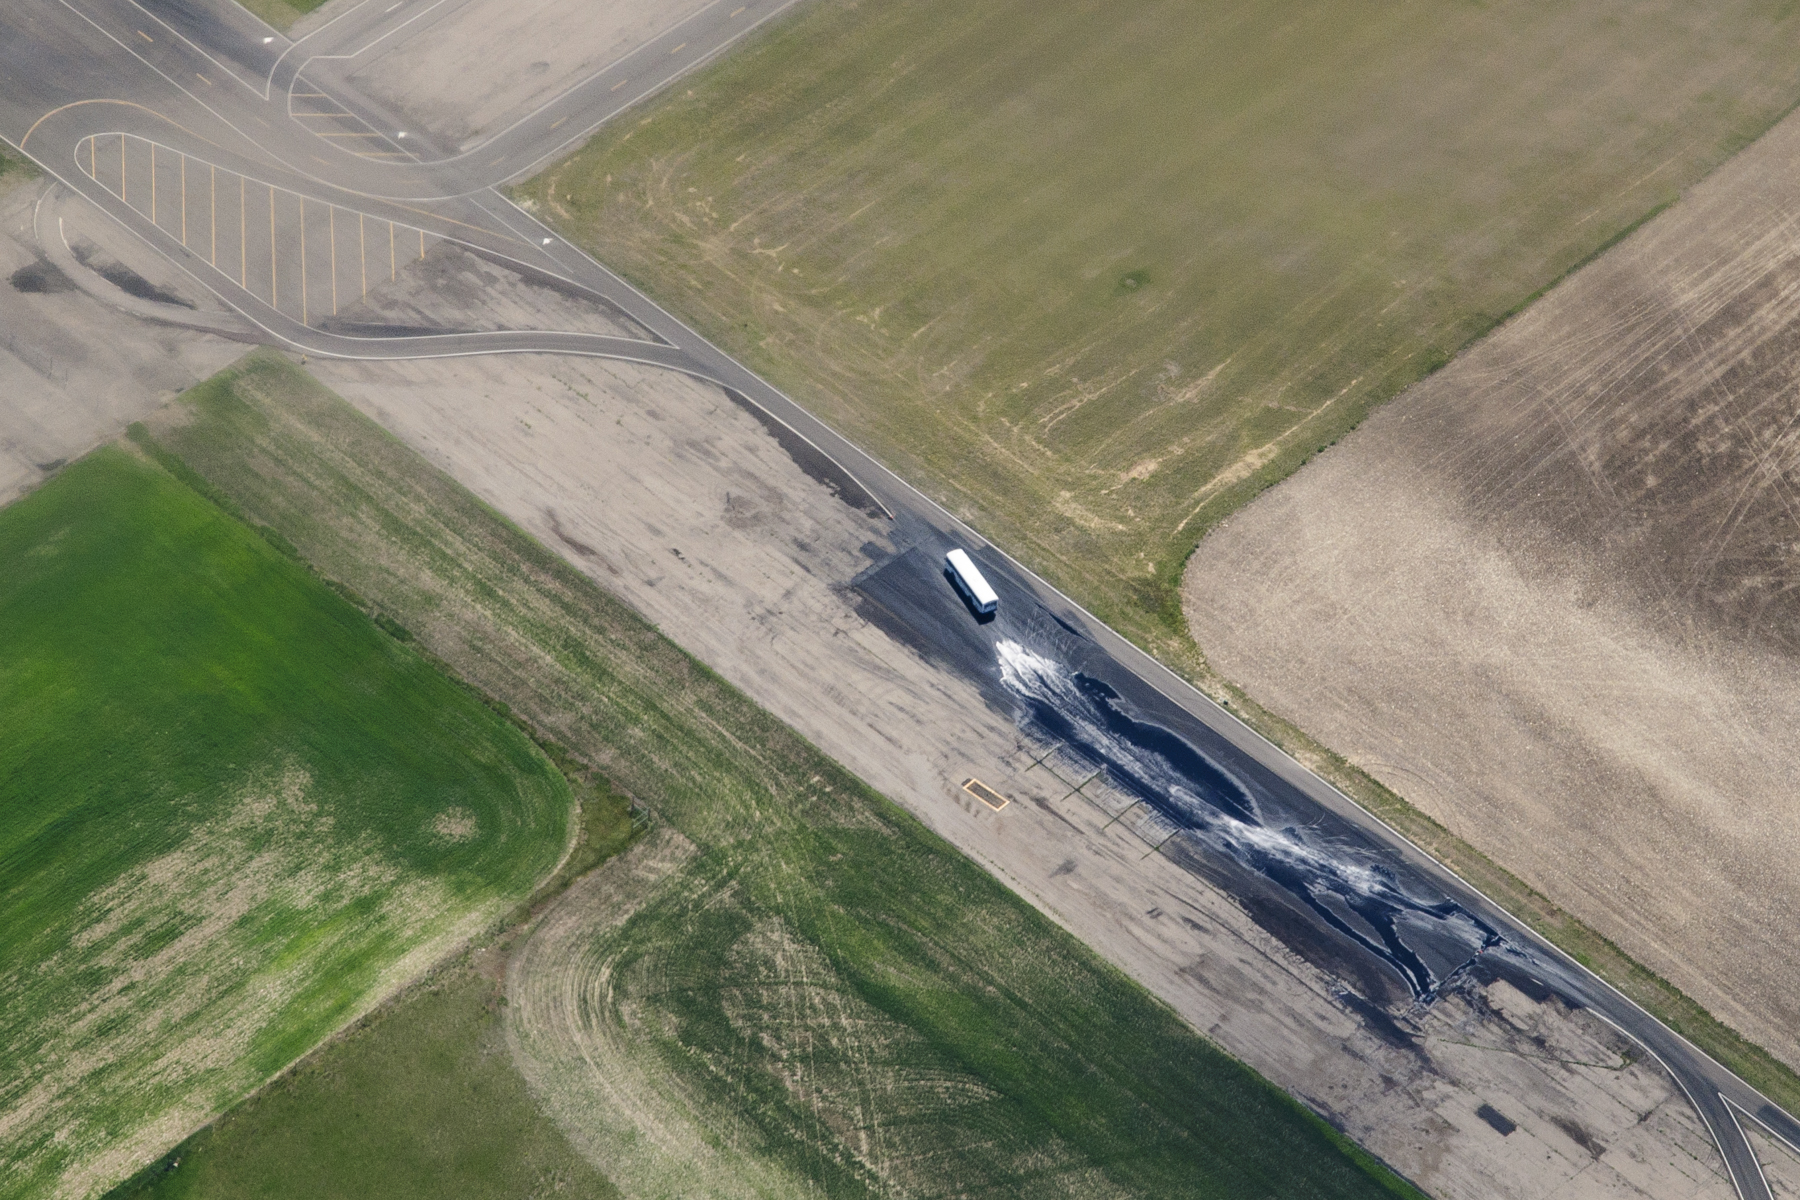 WTI Transcend aerial view. Passenger bus drives through section of test track that has been partially flooded with water,